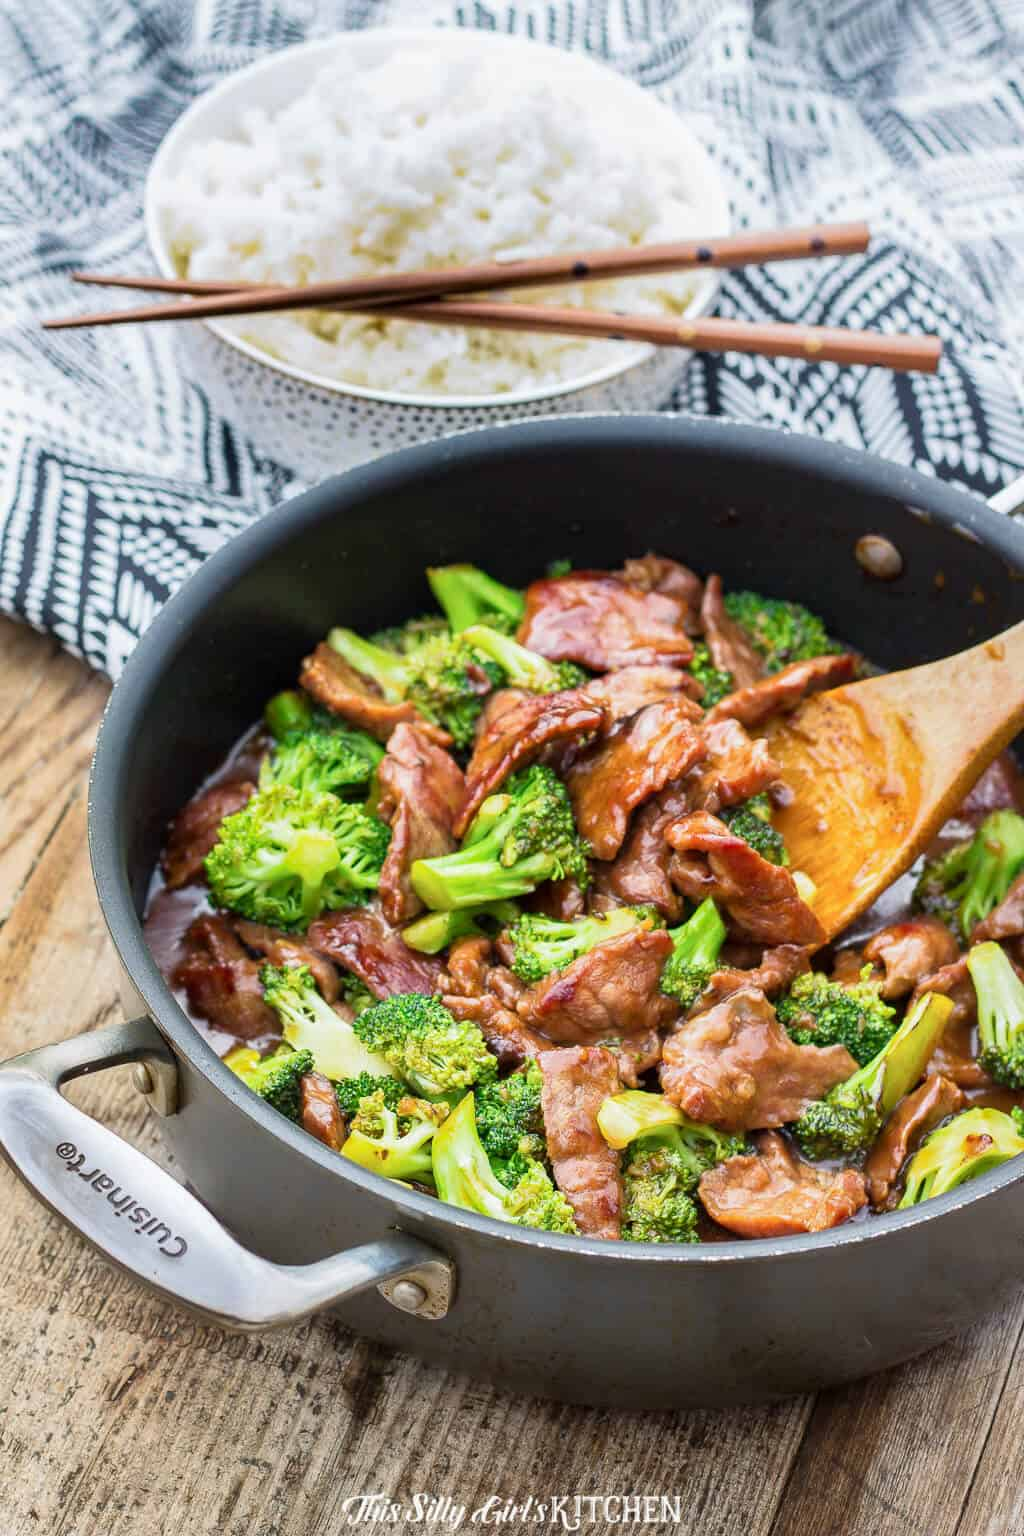 Beef and Broccoli in pan with bowl of rice in background